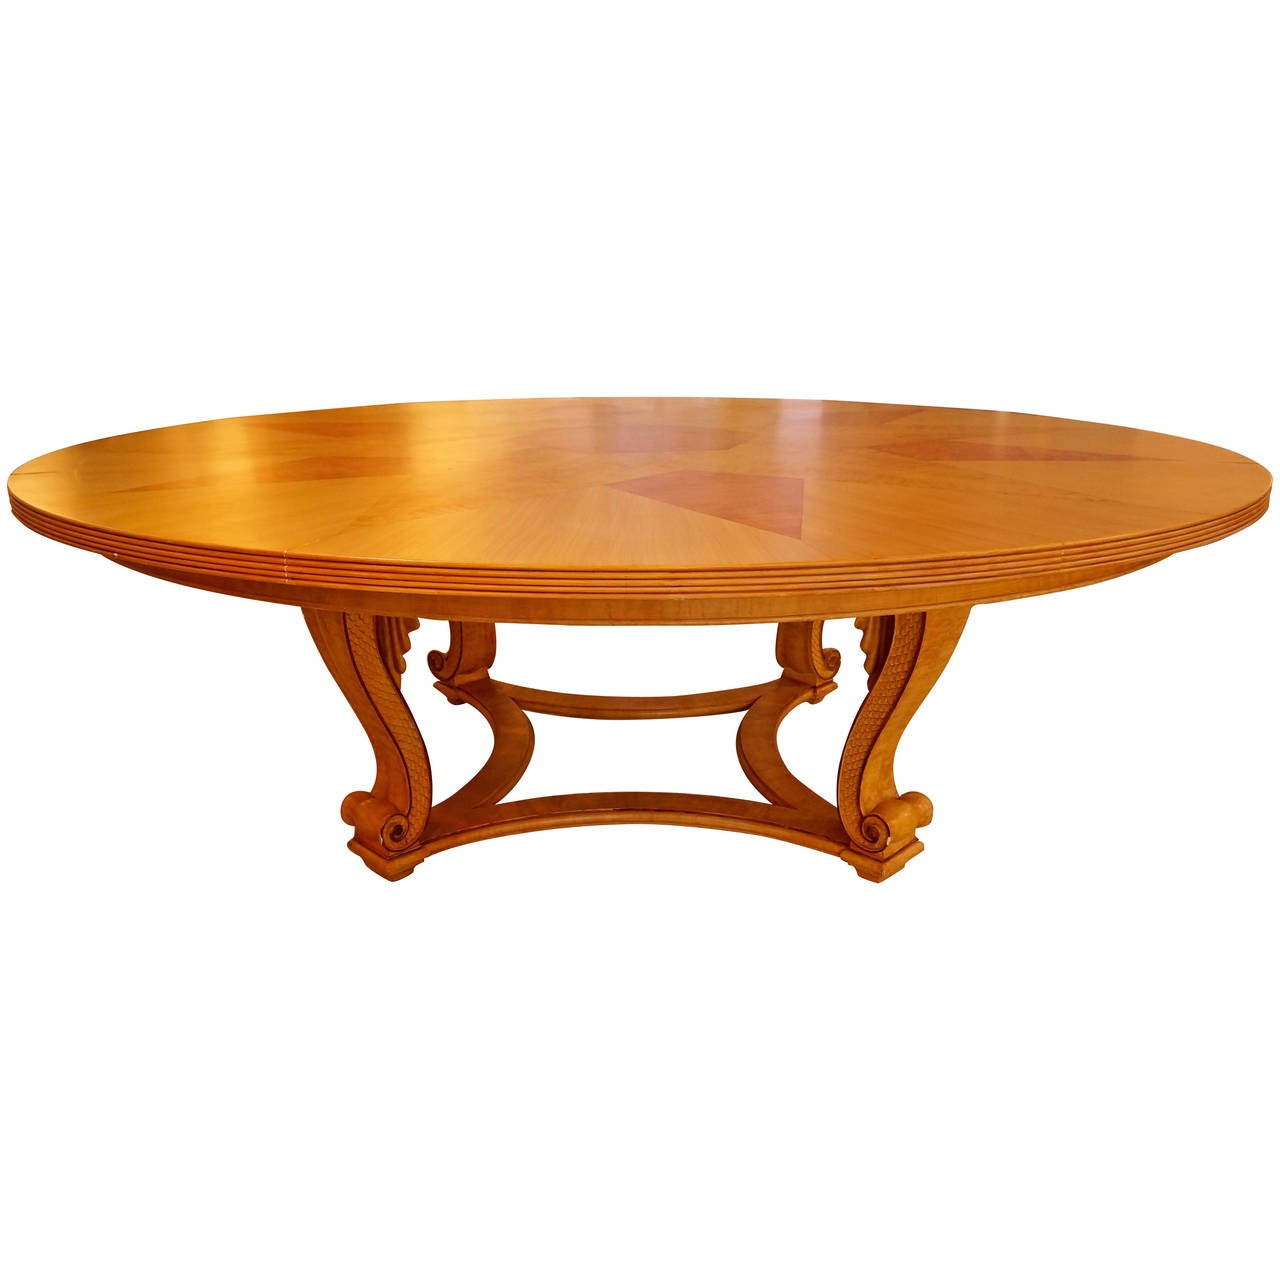 Louis xv style round dining table with faux finish at 1stdibs for Stylish round dining table